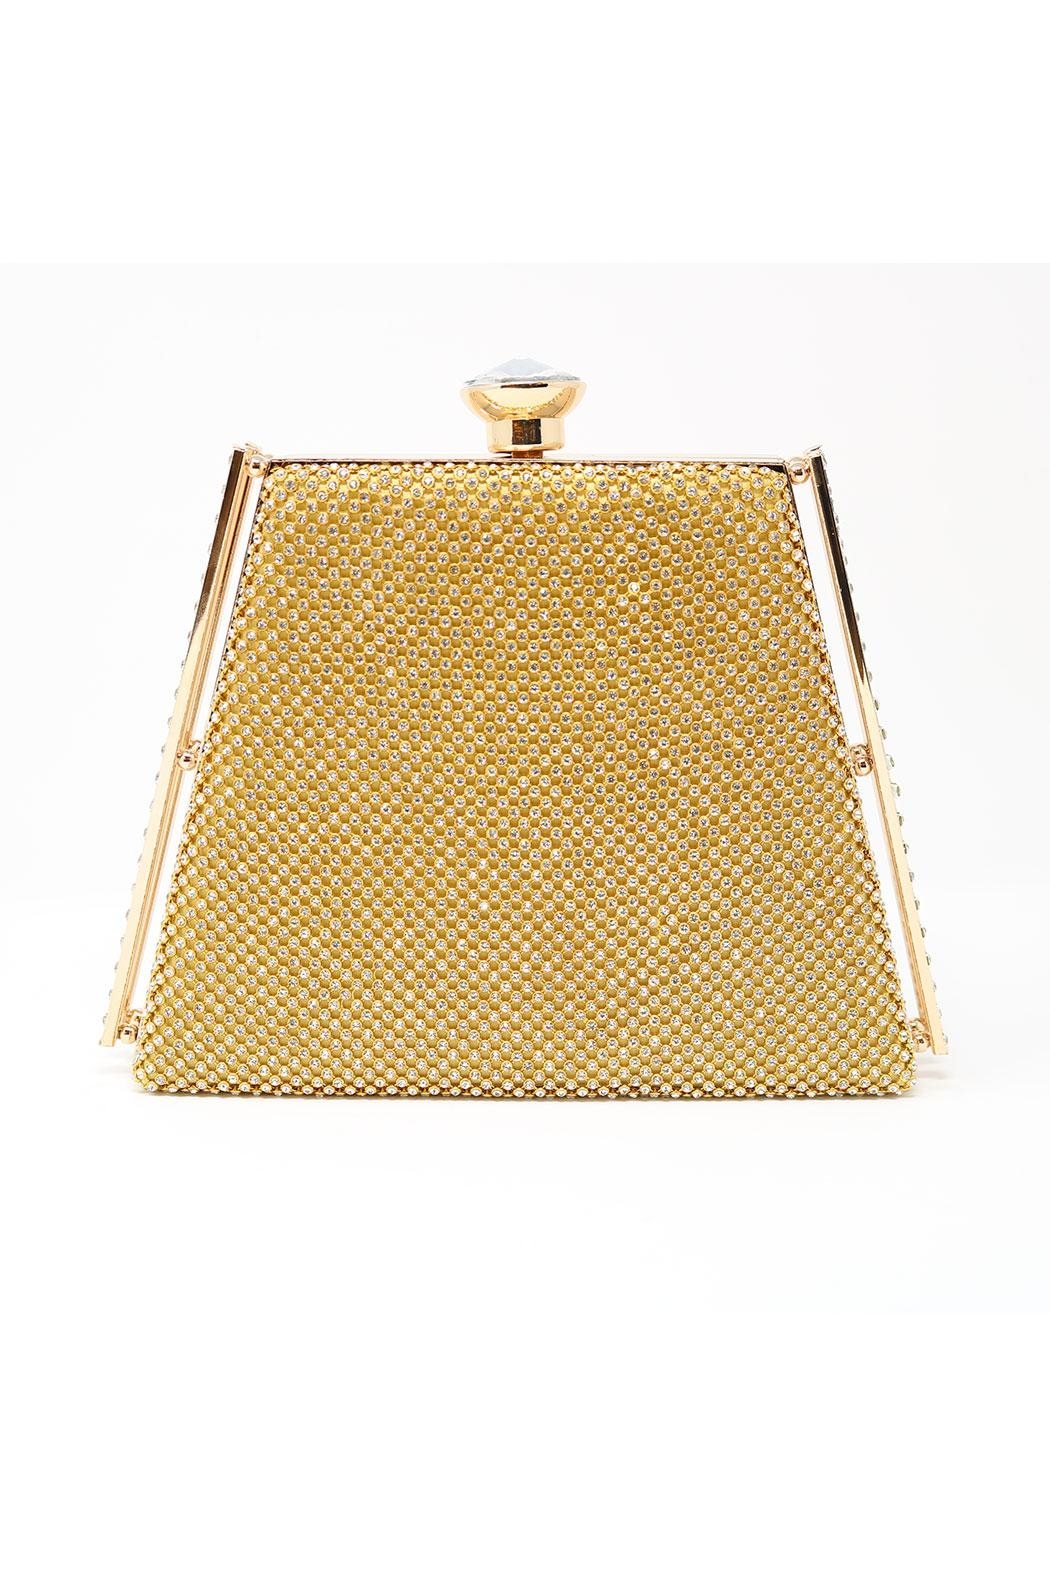 Nadya's Closet Trapezoid Shape Evening-Clutch - Front Cropped Image